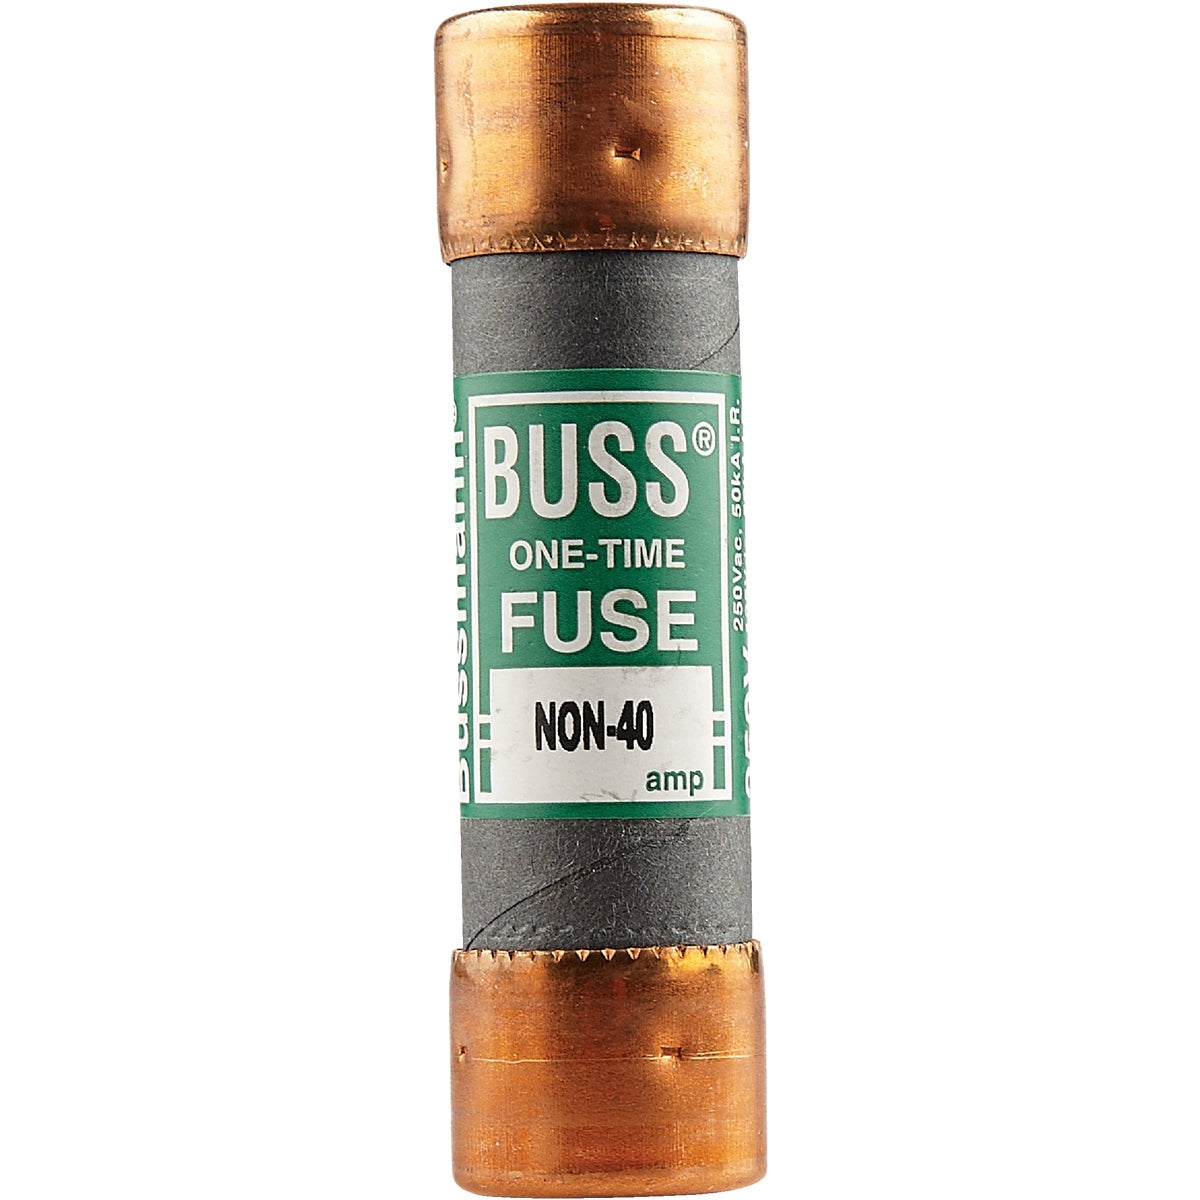 40A NON CARTRIDGE FUSE - NON-40 by Bussmann Cooper